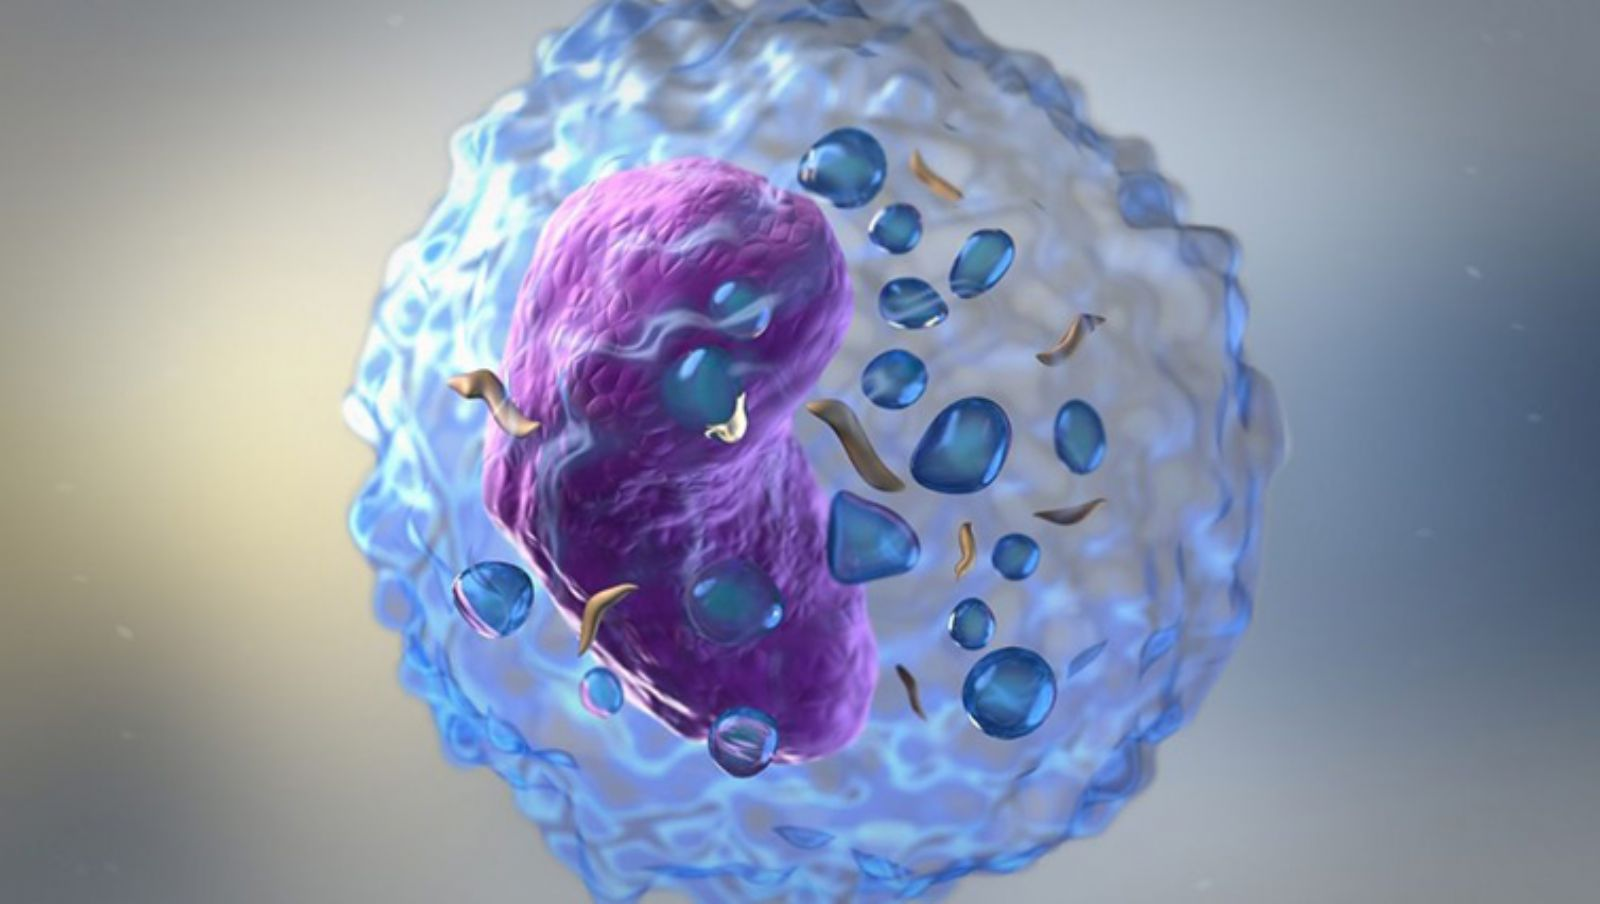 NK CELLS (Cancer killer)